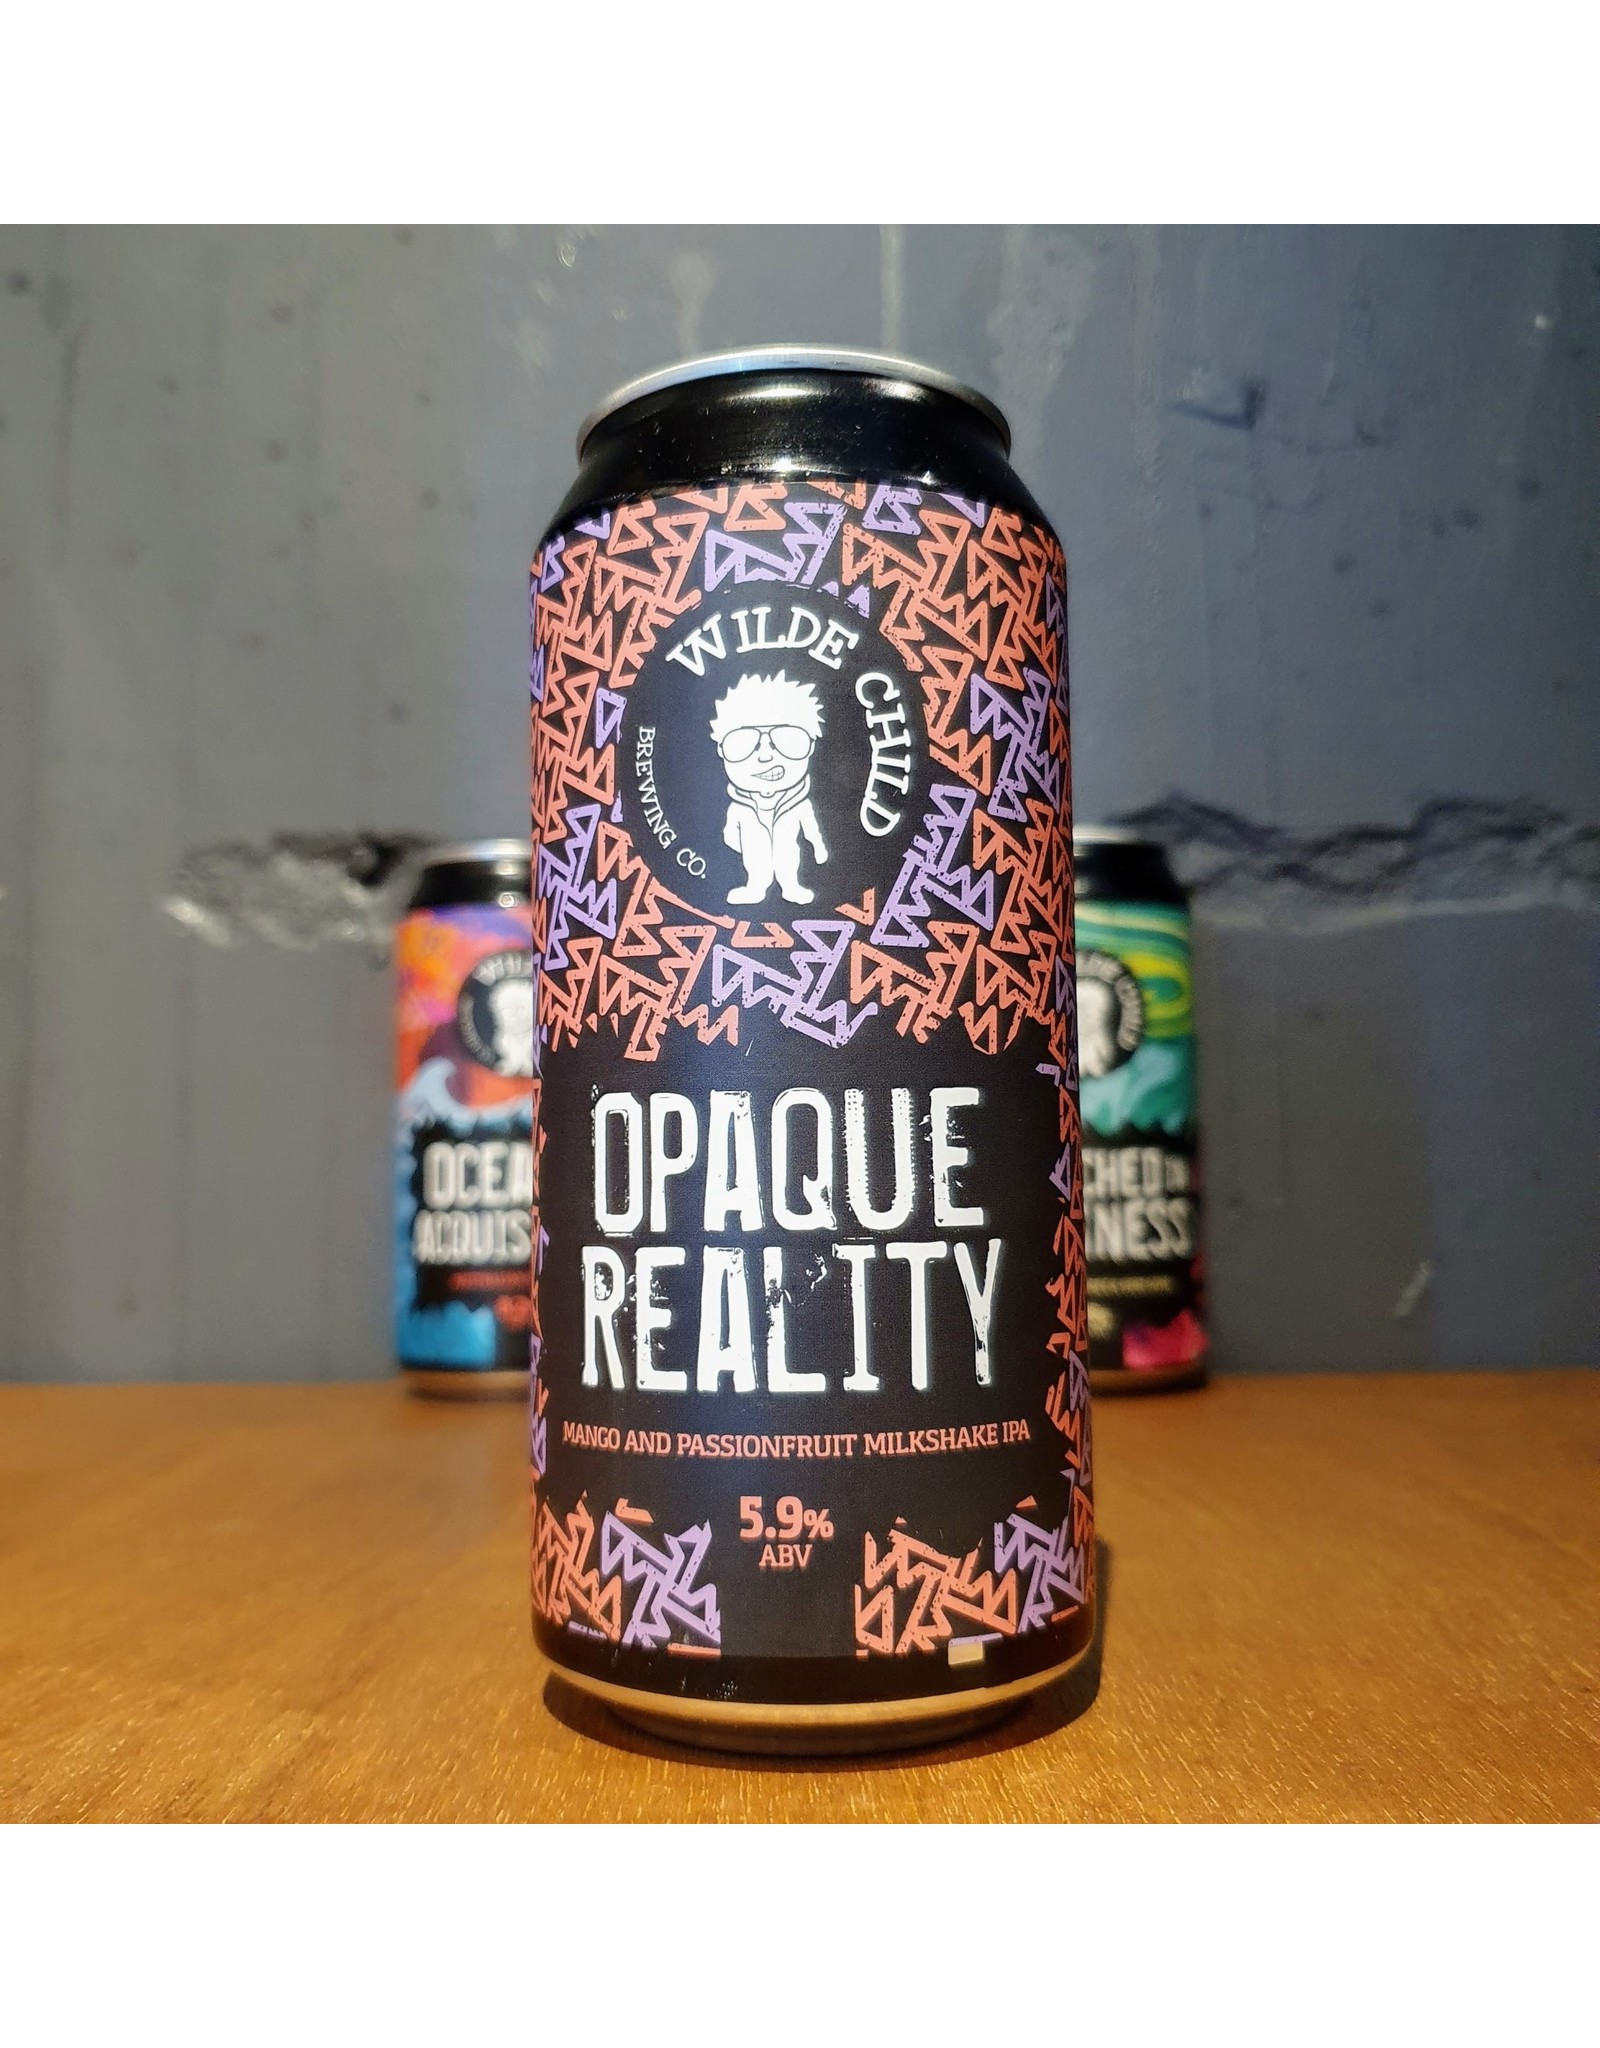 wild child Wild Child: Opaque Reality Milkshake IPA